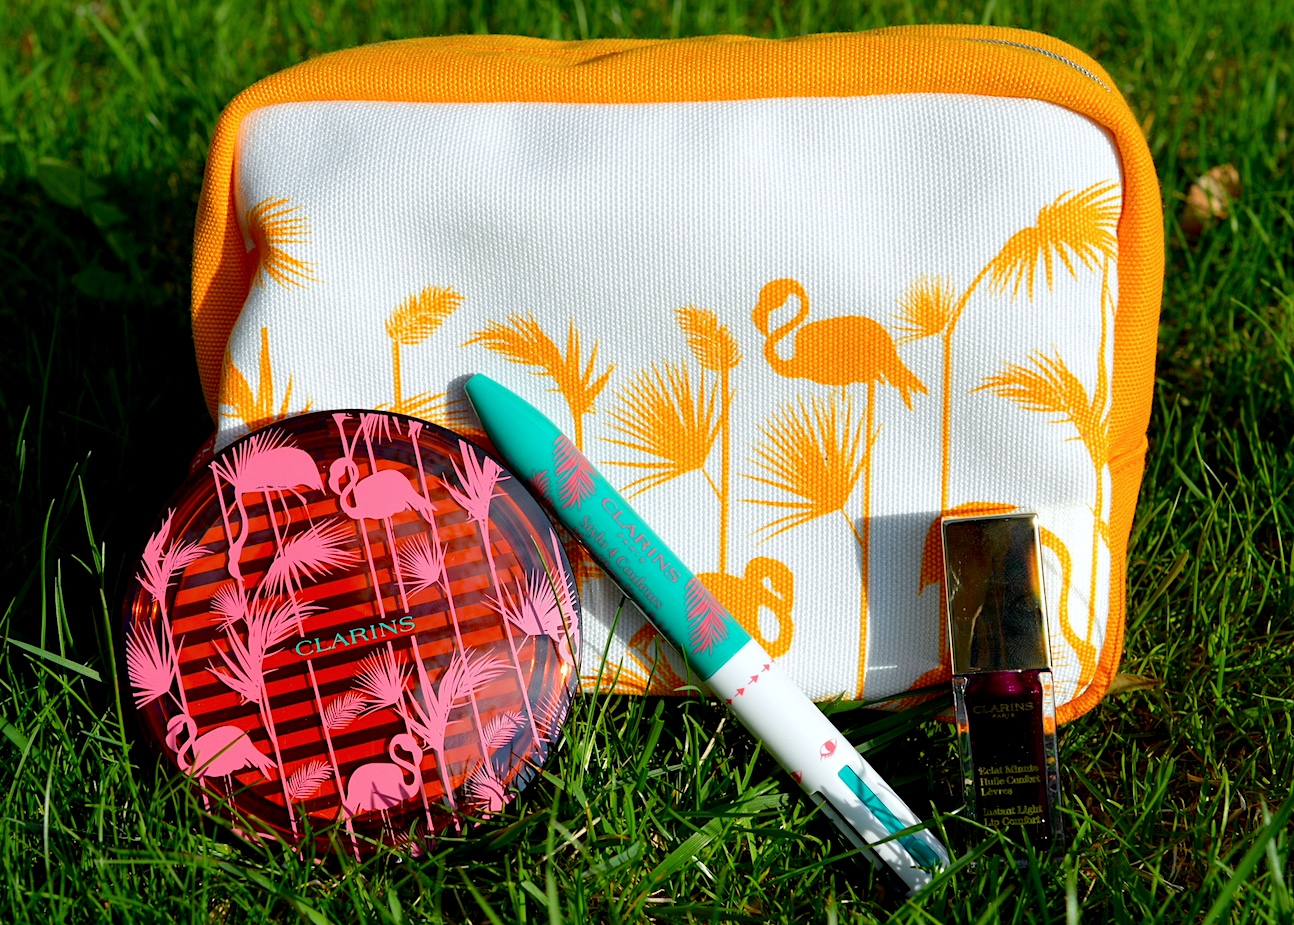 Clarins summer 2018 colleciton